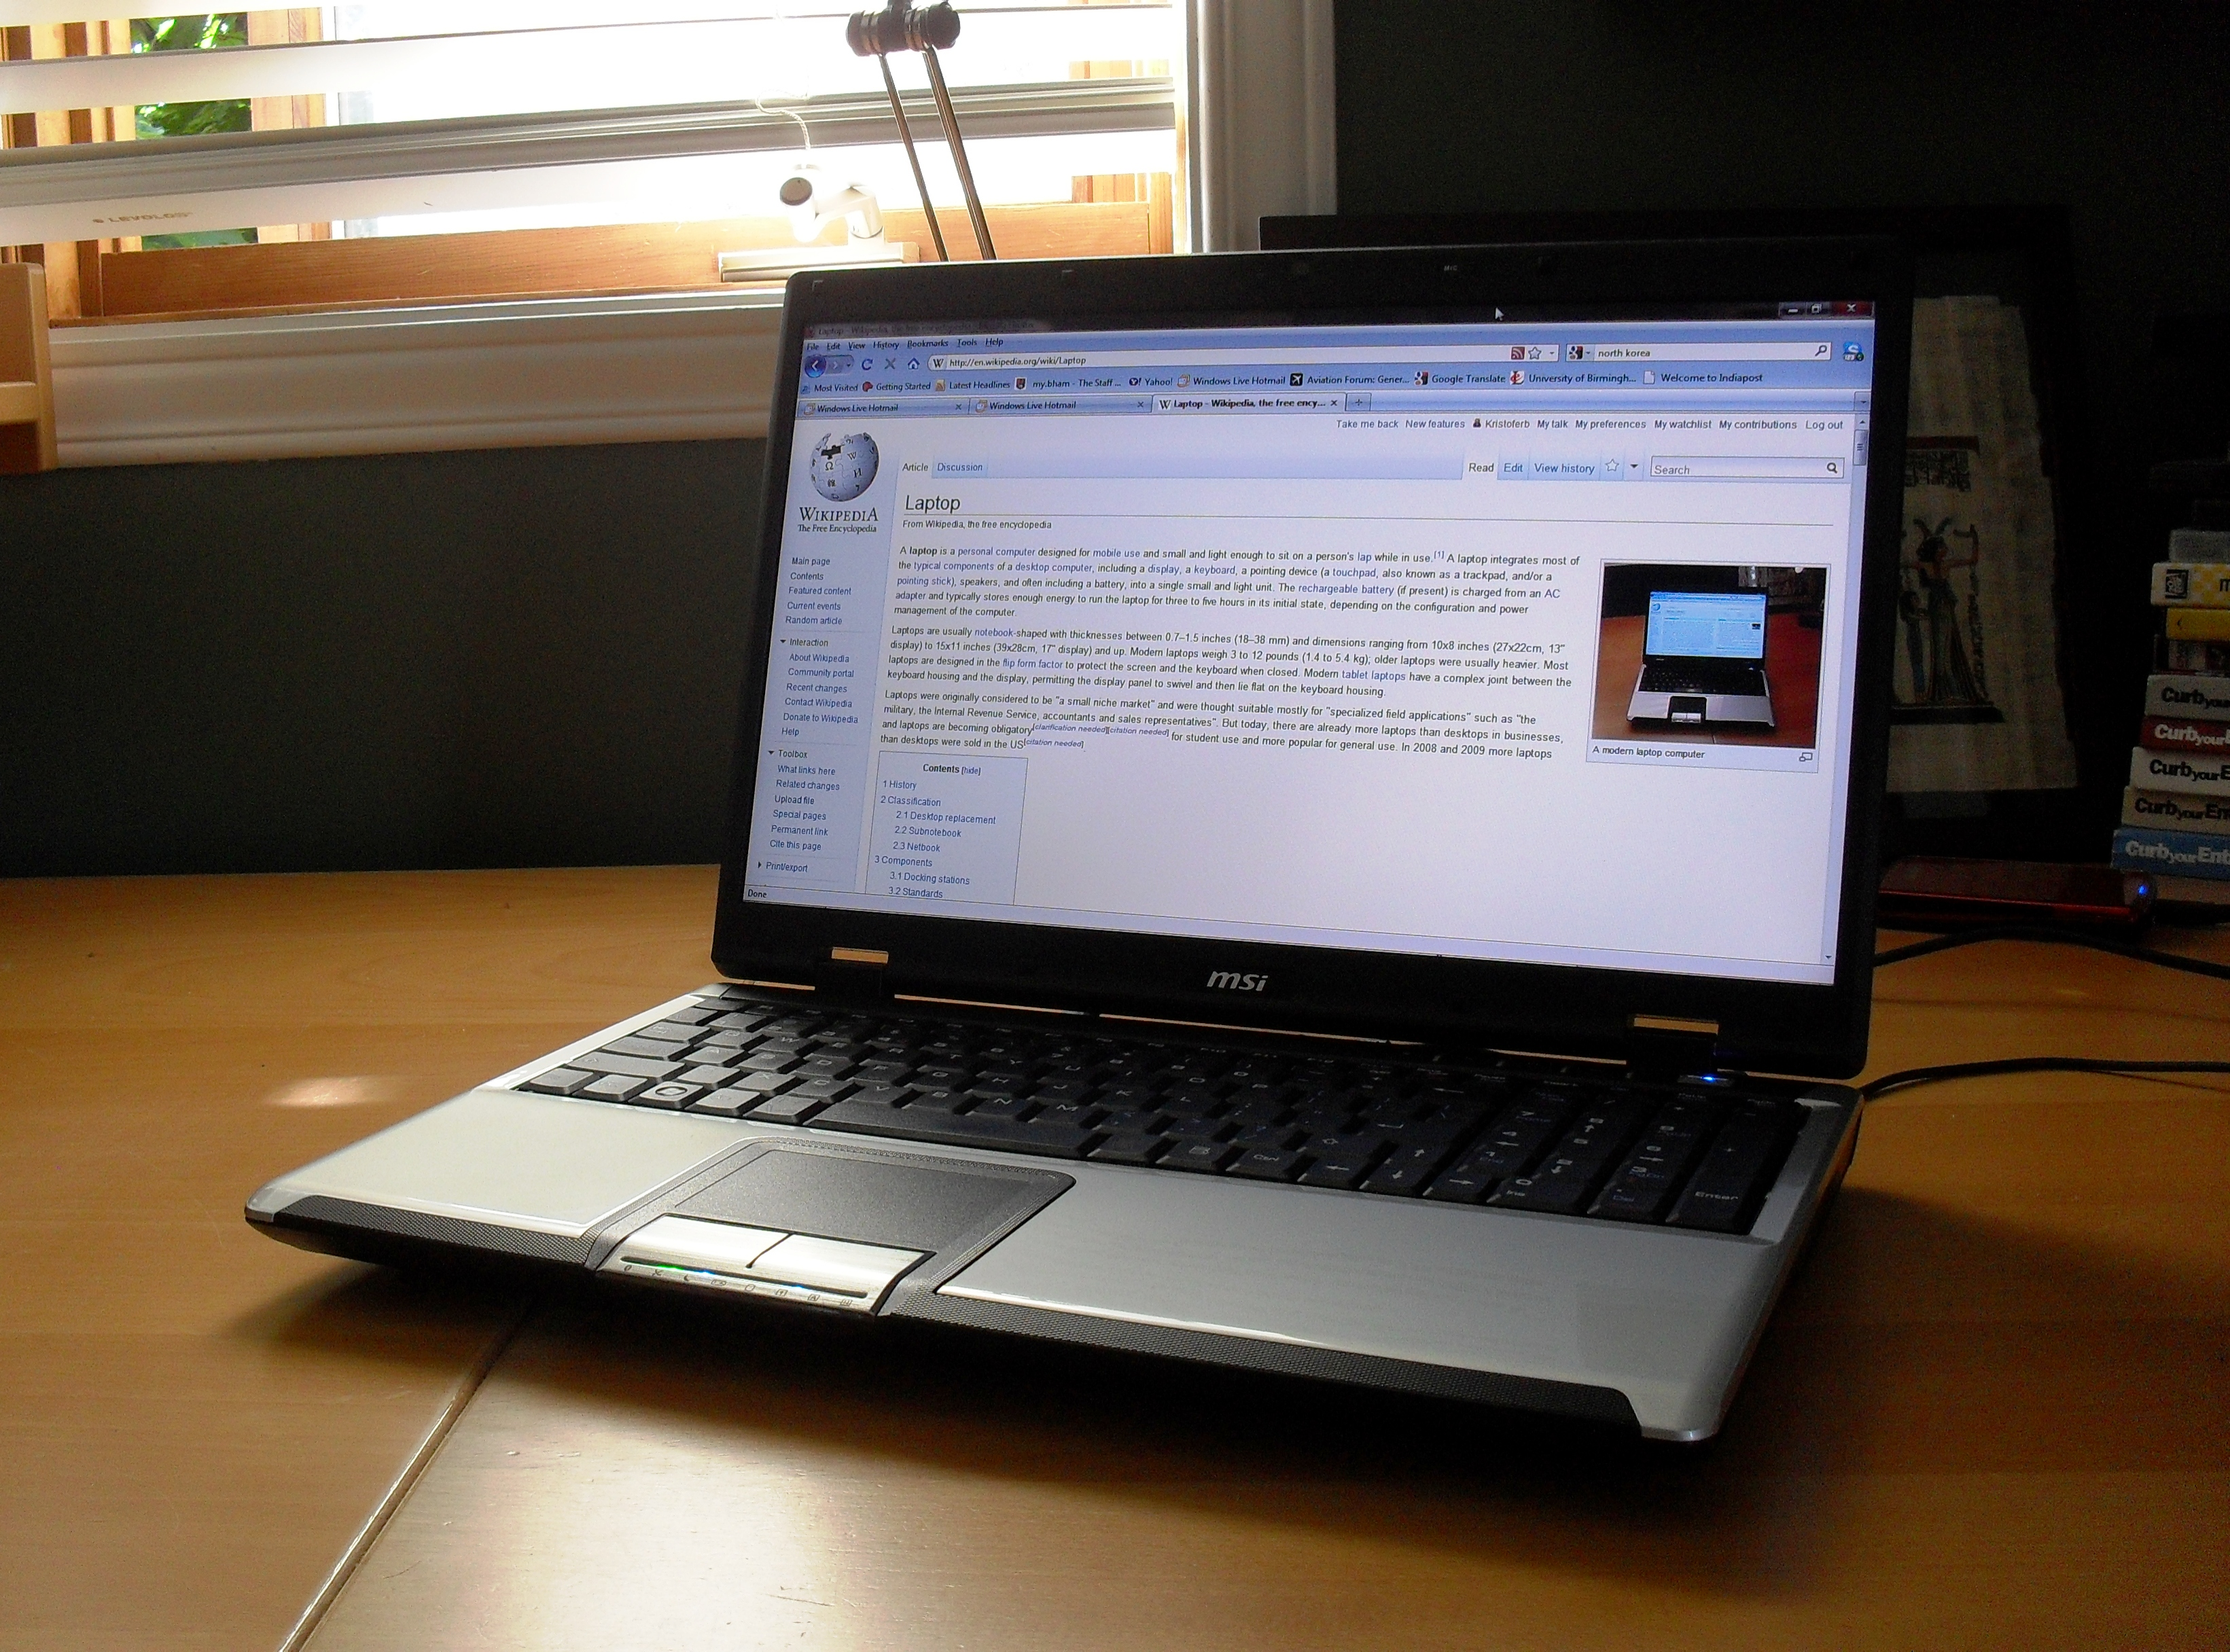 5 Ways To Make Your Laptop Faster